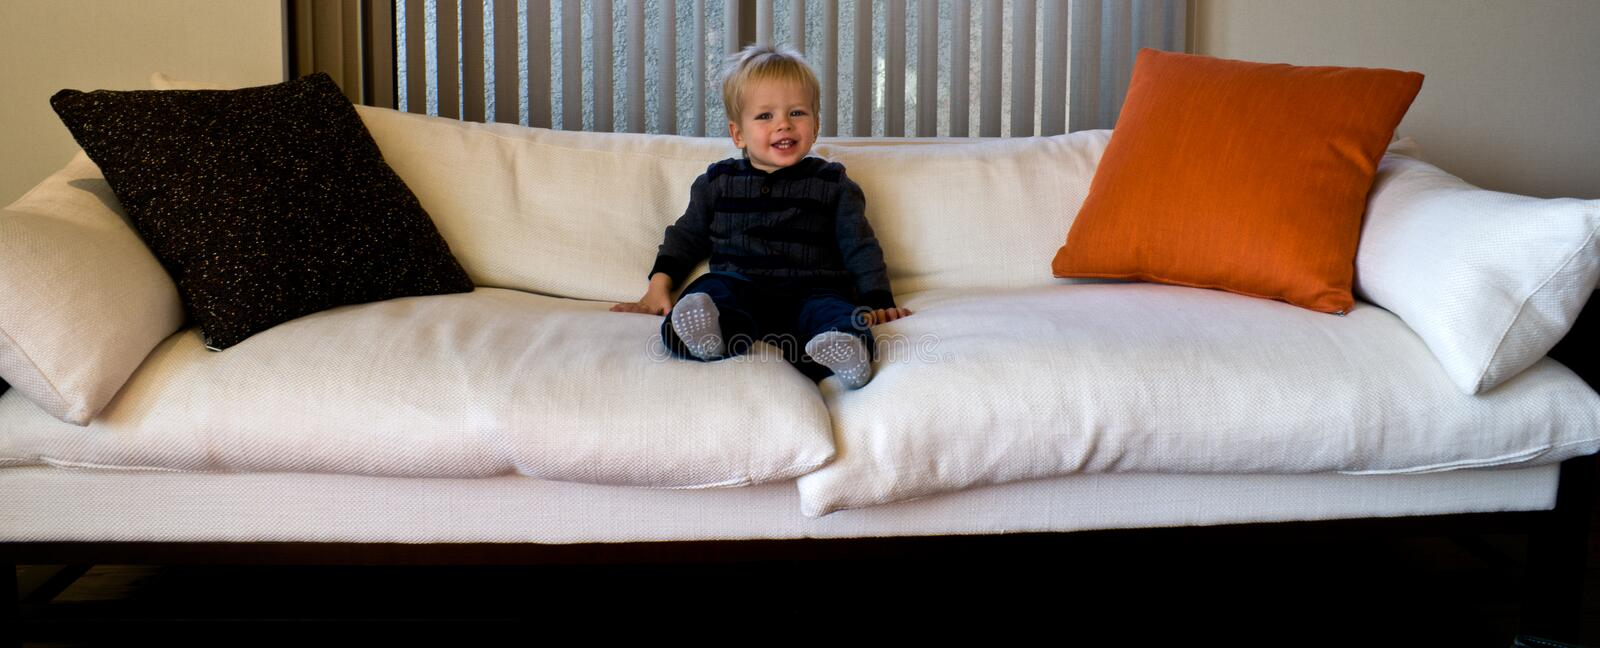 Download Toddler On An Oversized Sofa Stock Photo - Image: 12669498